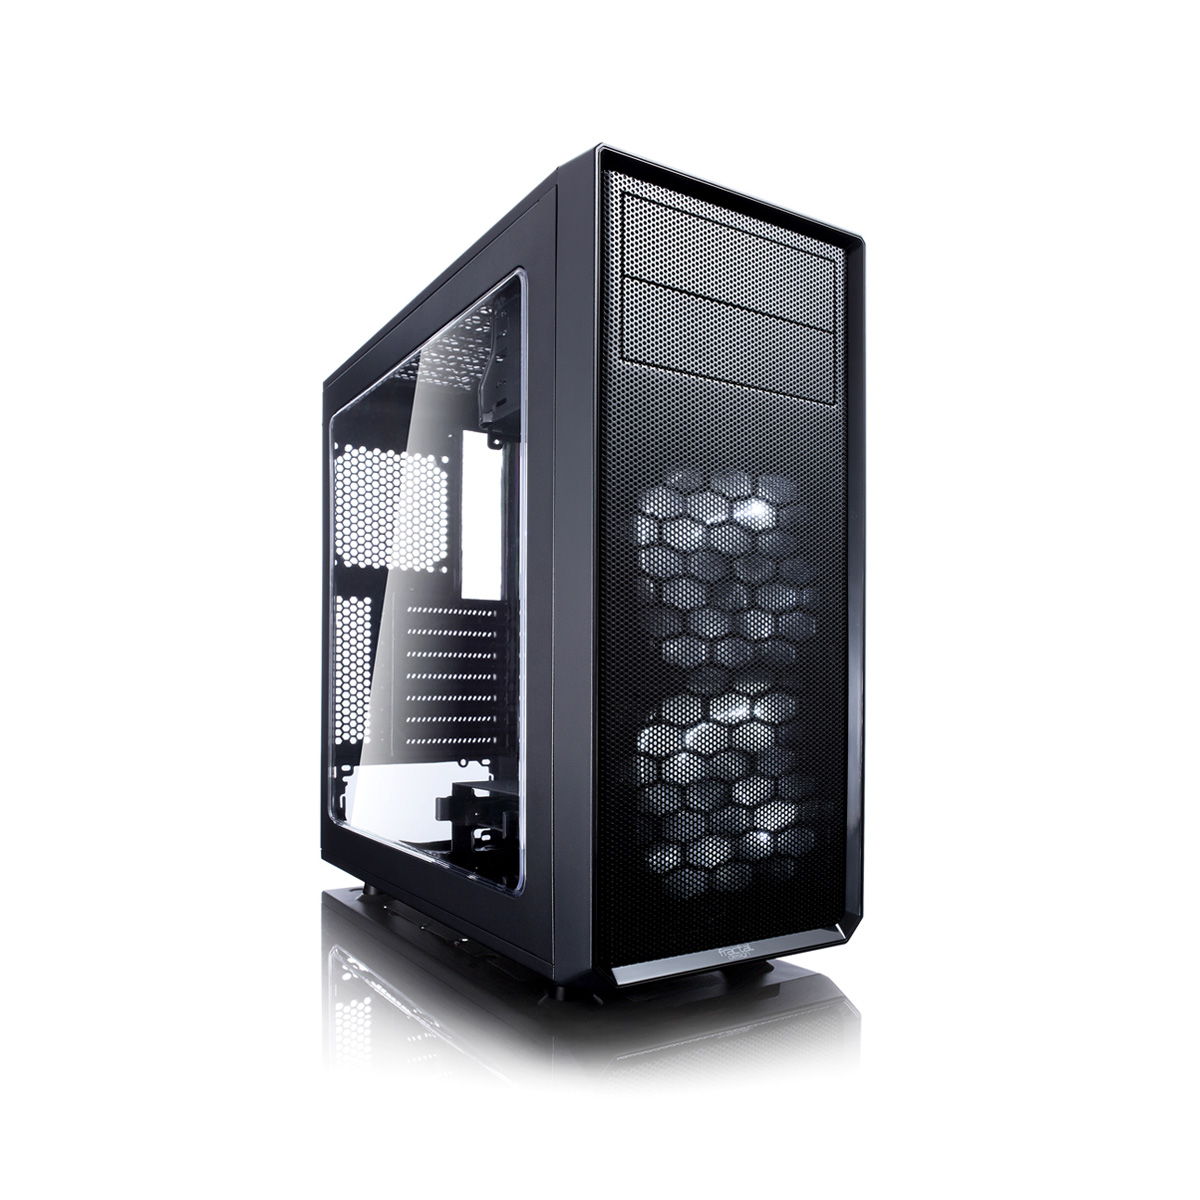 fractal design focus g noir fd ca focus bk w achat bo tier pc fractal design pour. Black Bedroom Furniture Sets. Home Design Ideas